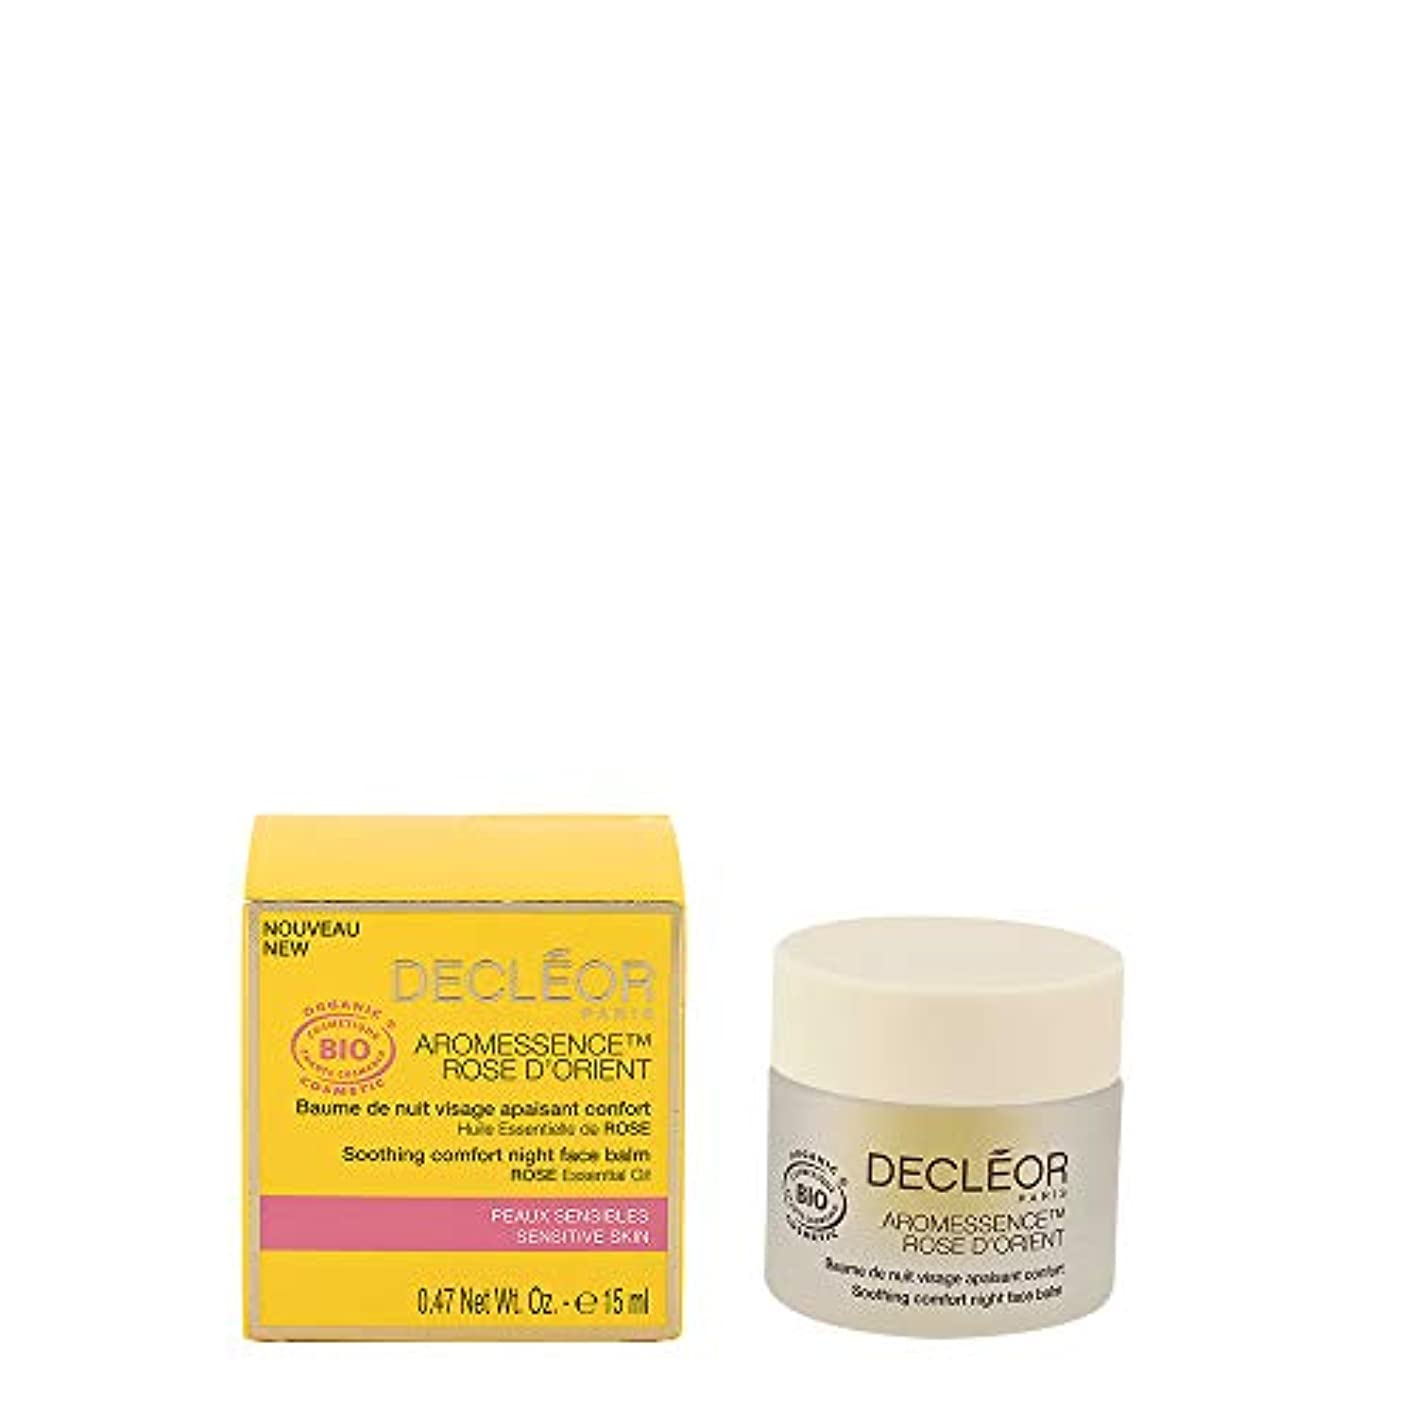 失望ジェットパンデクレオール Aromessence Rose D'Orient Soothing Comfort Night Face Balm - For Sensitive Skin 15ml/0.47oz並行輸入品